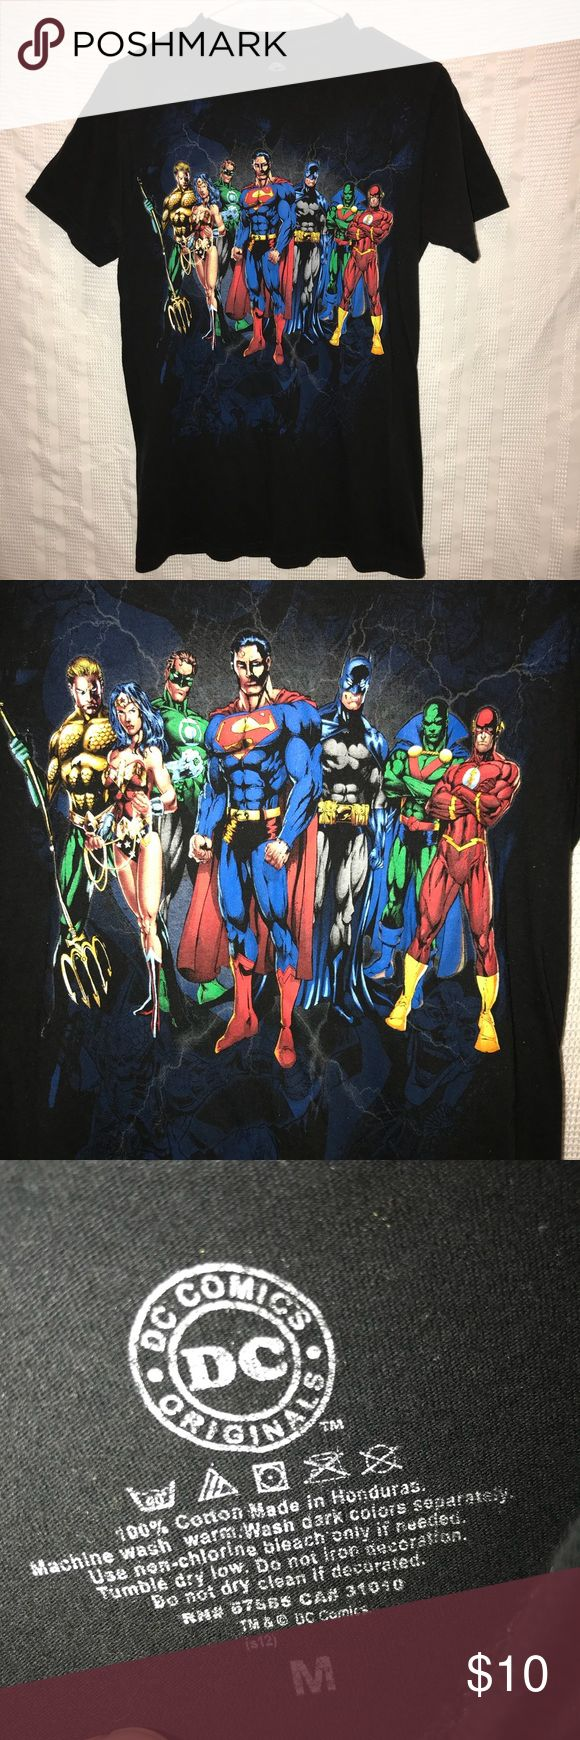 "DC comics justice league short sleeve t shirt sz M Awesome t shirt that comes with a black color and has the justice league on the front. It has been worn before so the color has very slight fading but is still in good condition. The shirt comes with a slim fit. The chest measurement is 36"", the shirt length is 27"" DC comics Shirts Tees - Short Sleeve"